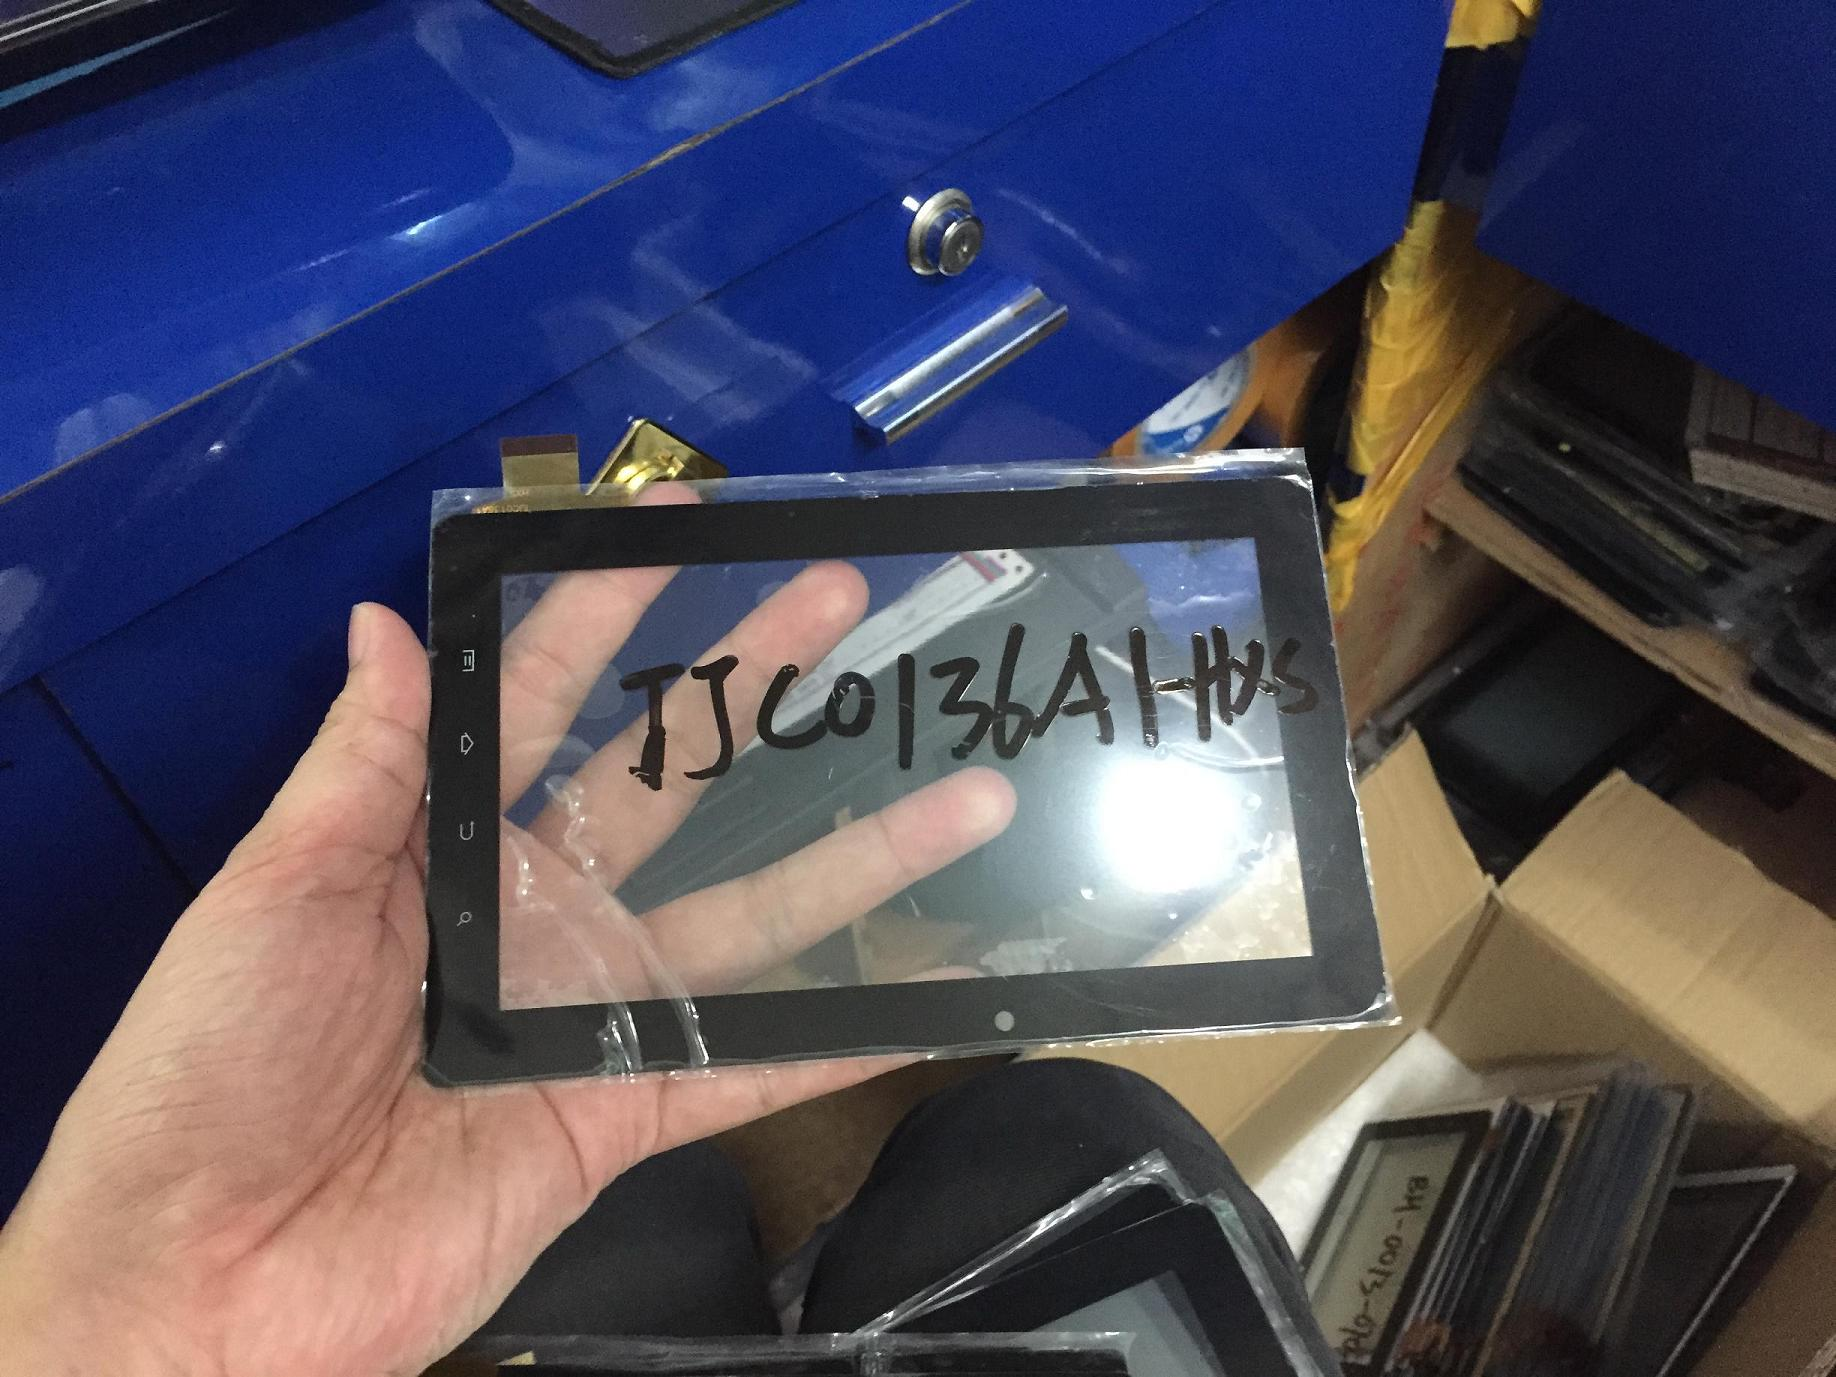 7 inch tjc0136a1 freelander PD10 PD20 capacitive touch screen(China (Mainland))